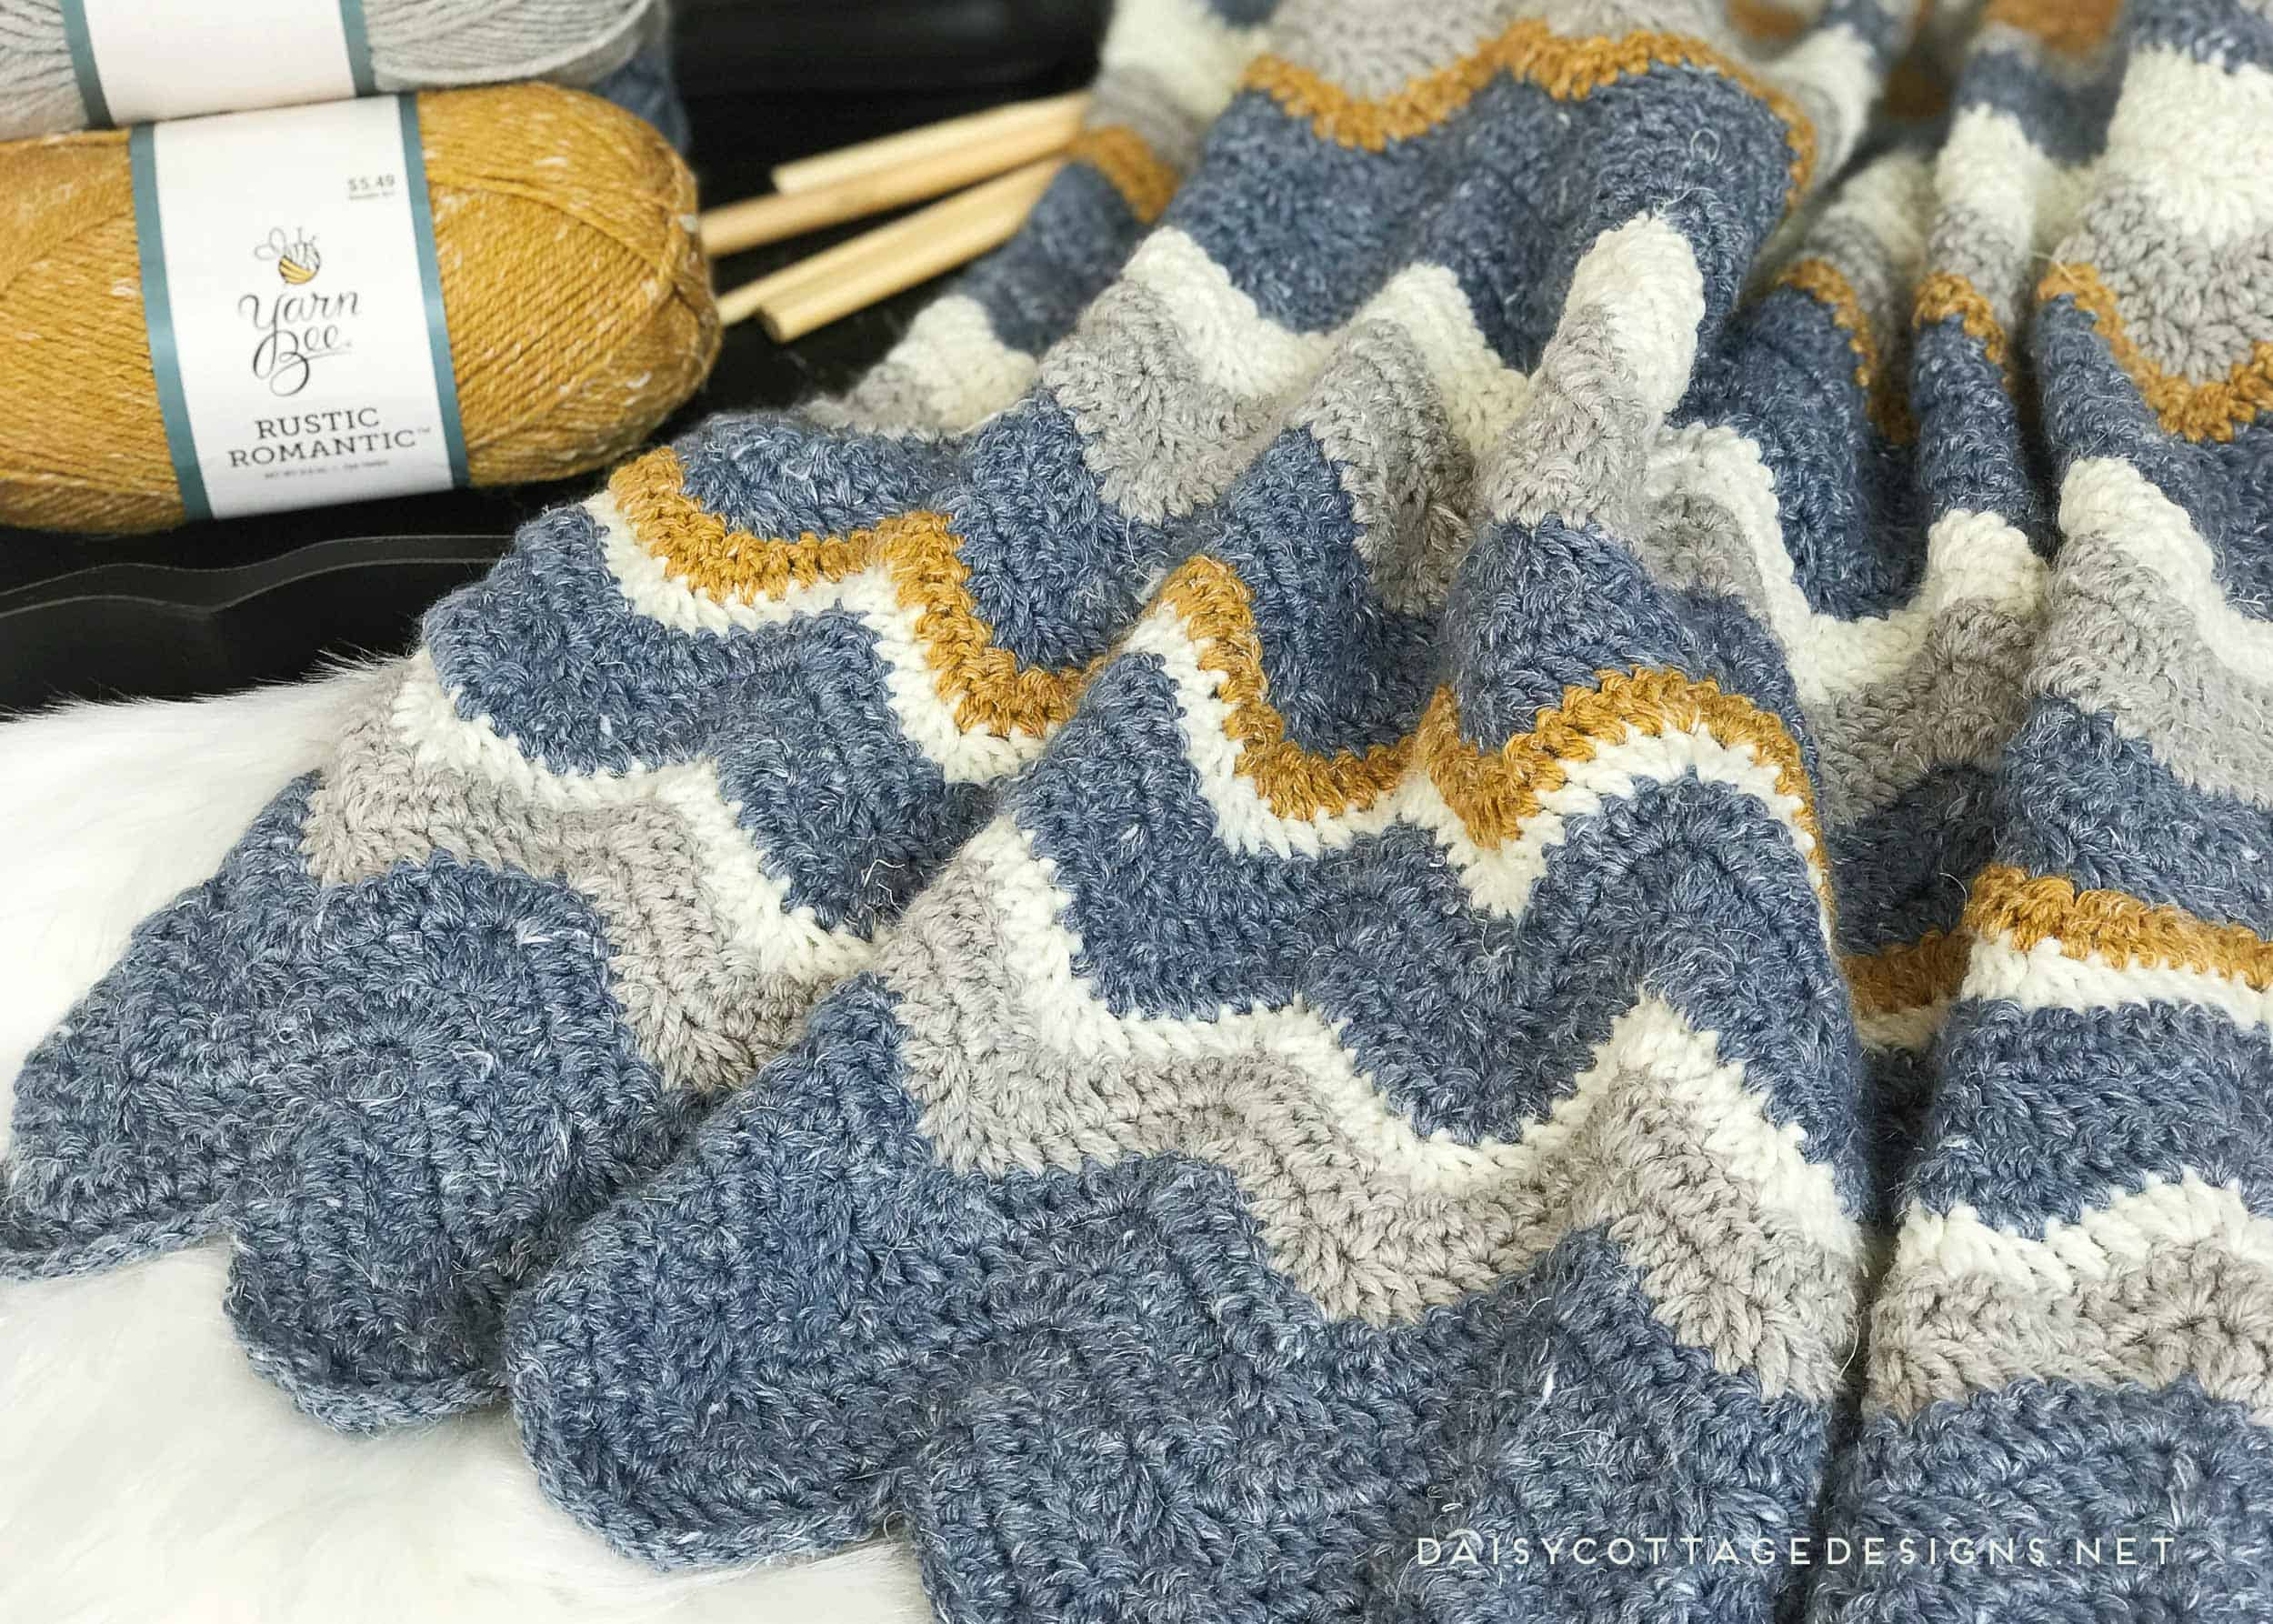 Use this chevron blanket crochet pattern from Daisy Cottage Designs to create a beautiful afghan in any size. | crochet bad blanket, crochet afghan pattern, easy crochet pattern, free crochet pattern, ripple crochet pattern